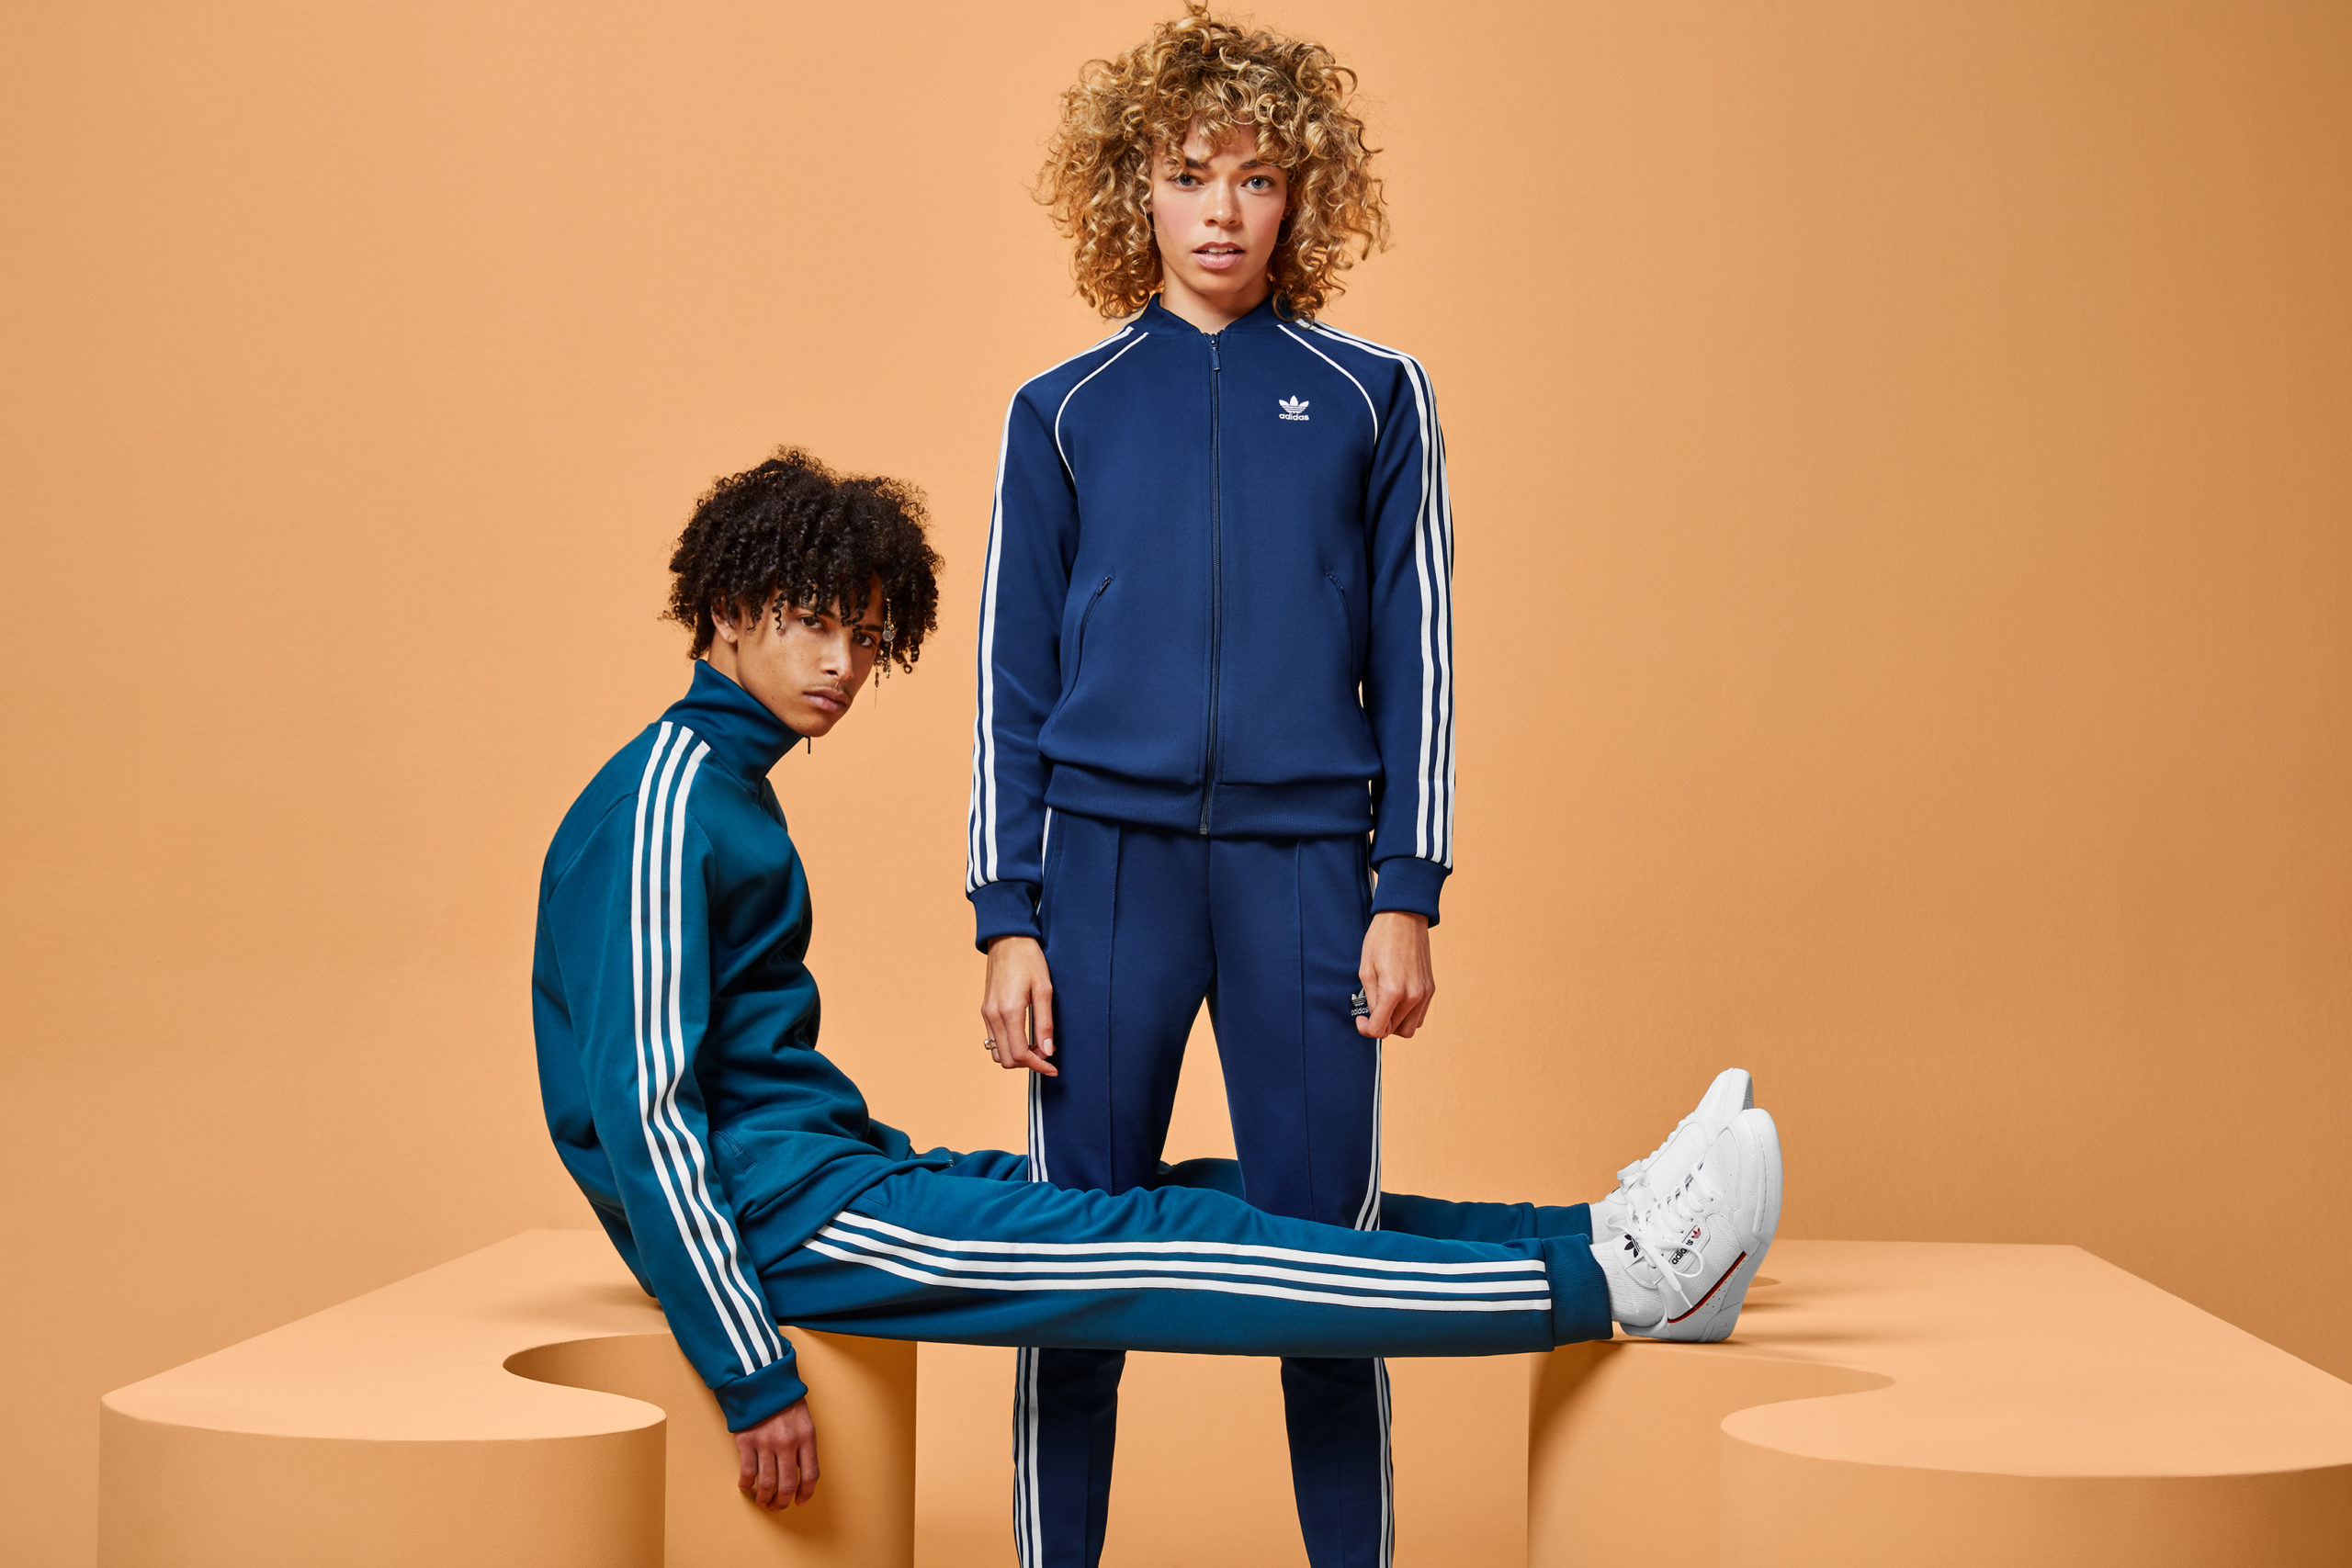 A woman wearing a blue tracksuit stands between the legs of a guy, also wearing a blue tracksuit, who's sitting on a wavy modular shape with legs propped up on another wavy shape. Both shapes and the background are an orange-tan.